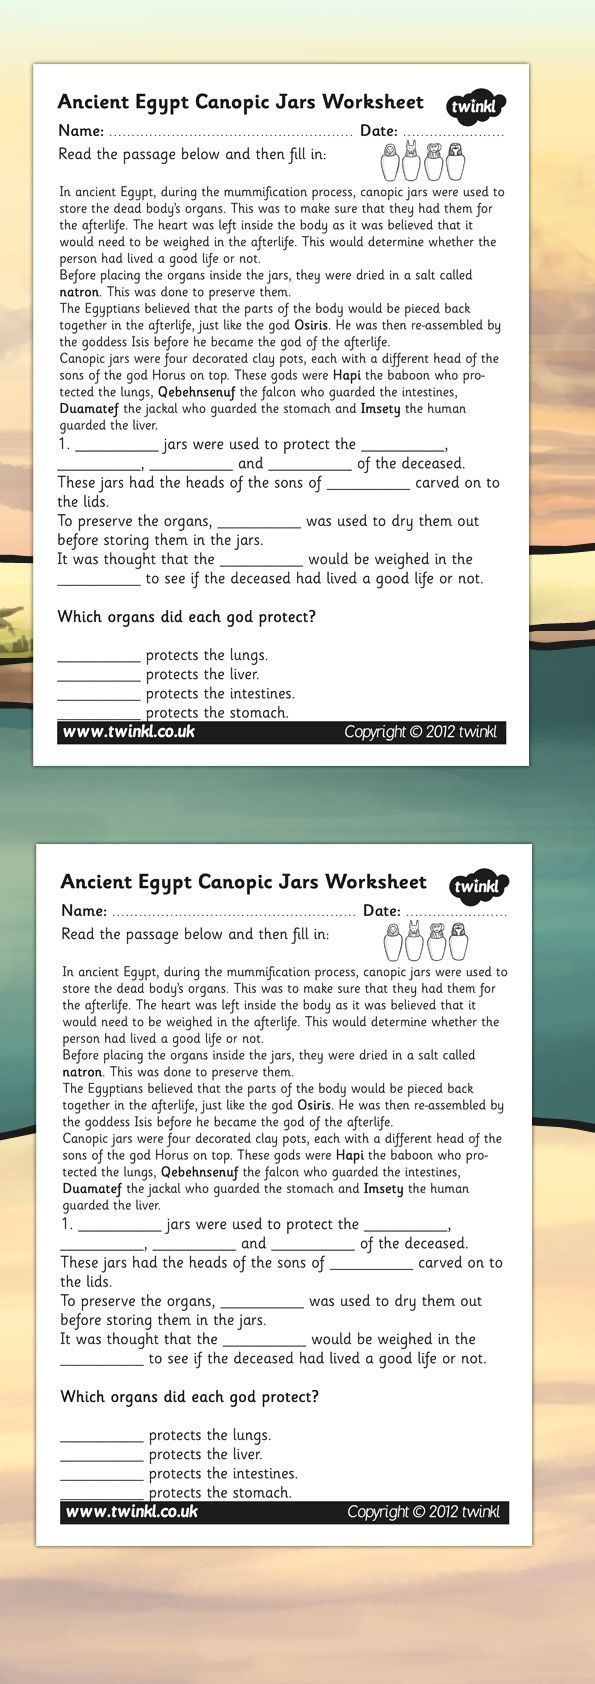 Workbooks prehistory worksheets : 73 best Ancient History Painting images on Pinterest | Beautiful ...